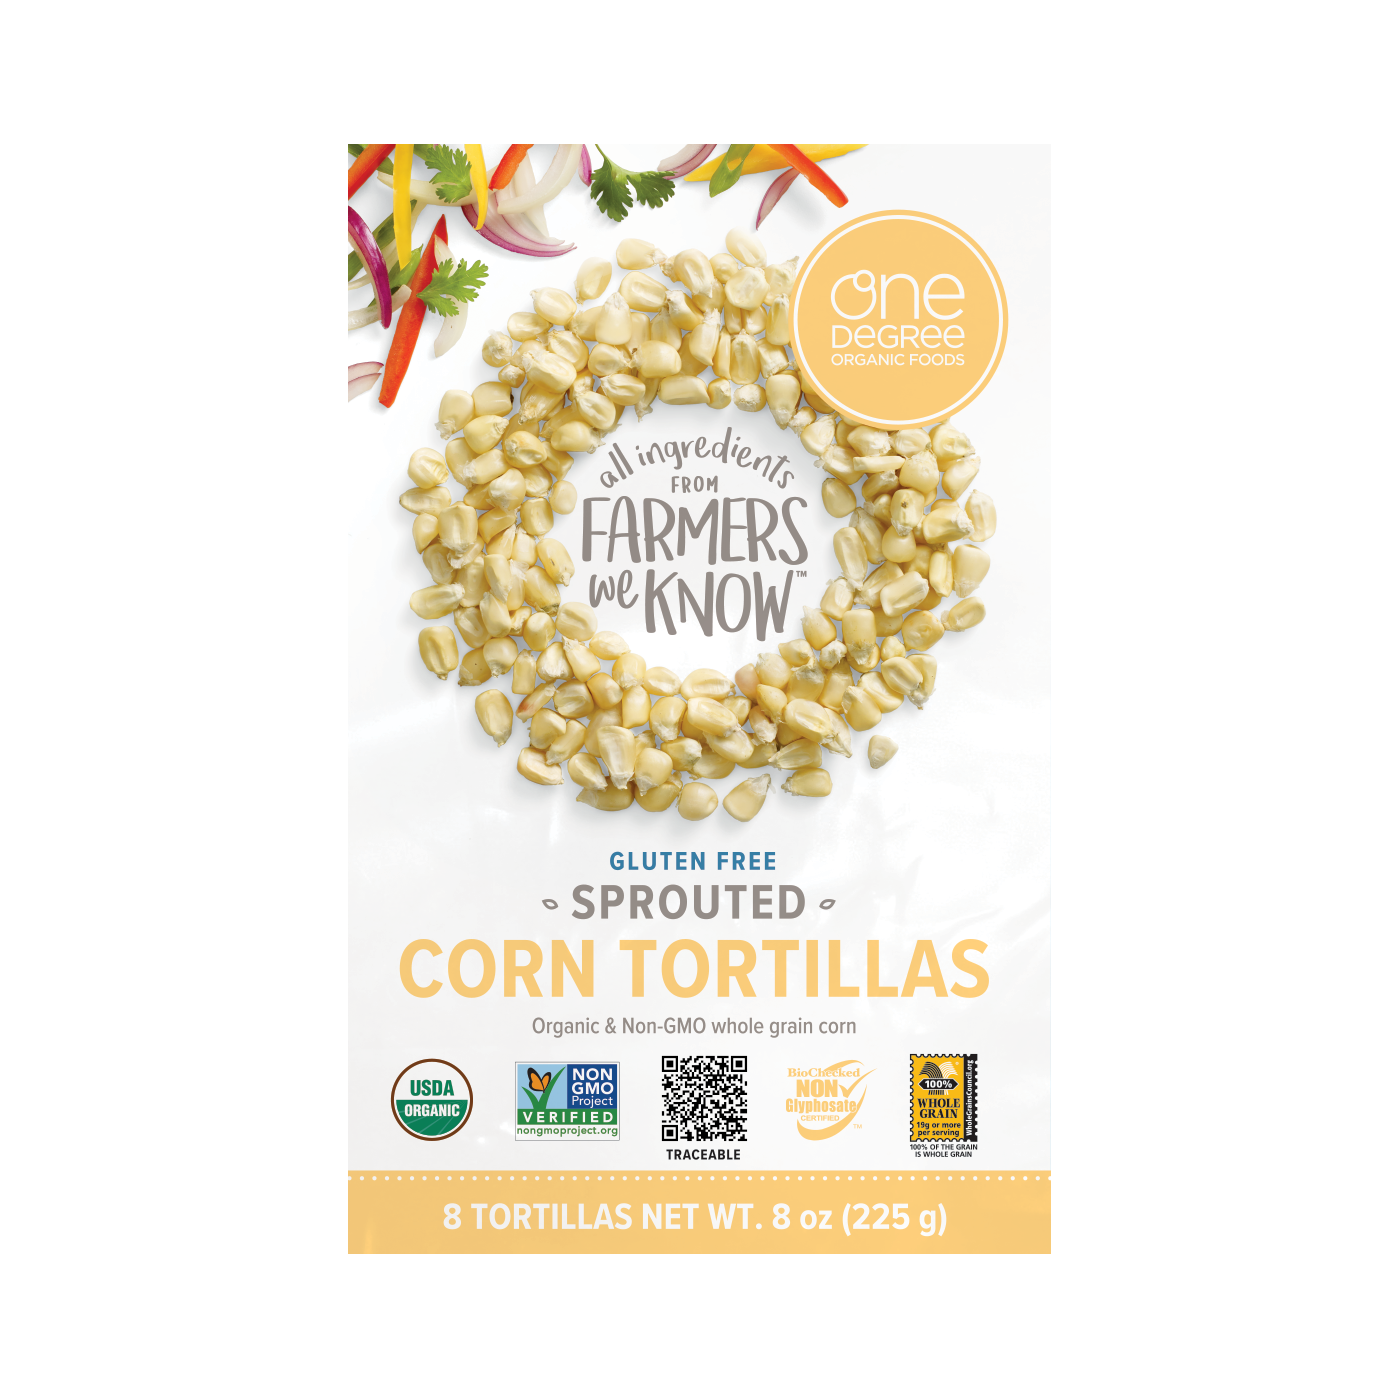 pictures 100 Cleanest Packaged Food Awards 2019: Healthy Bars